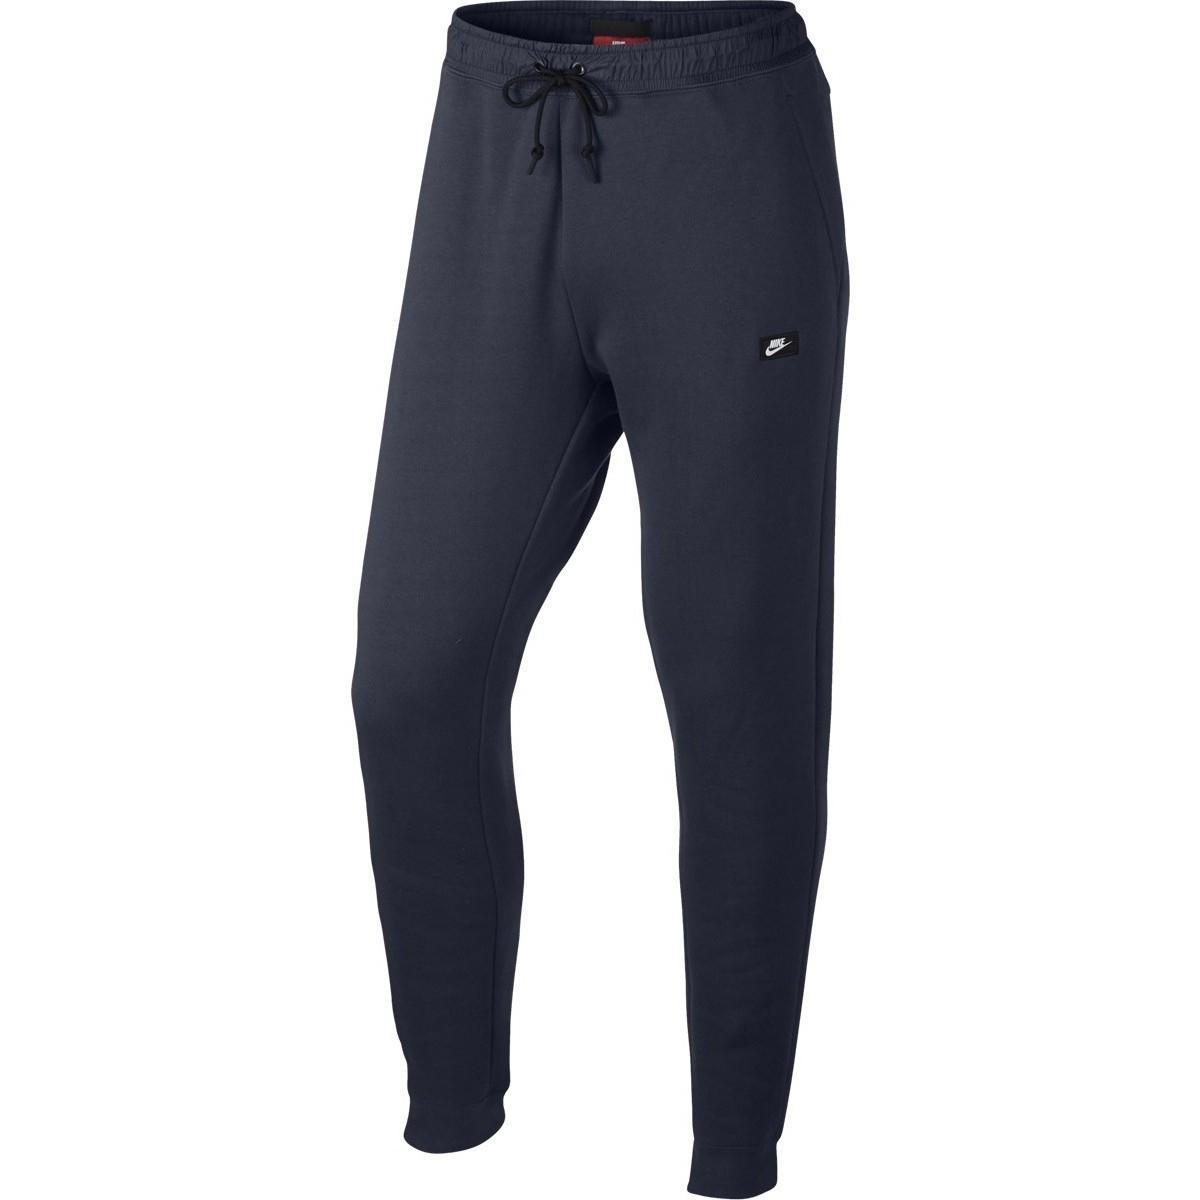 Спортивные штаны мужские Nike Men's Winter Sportswear Modern Jogger Pants Obsidian/Black